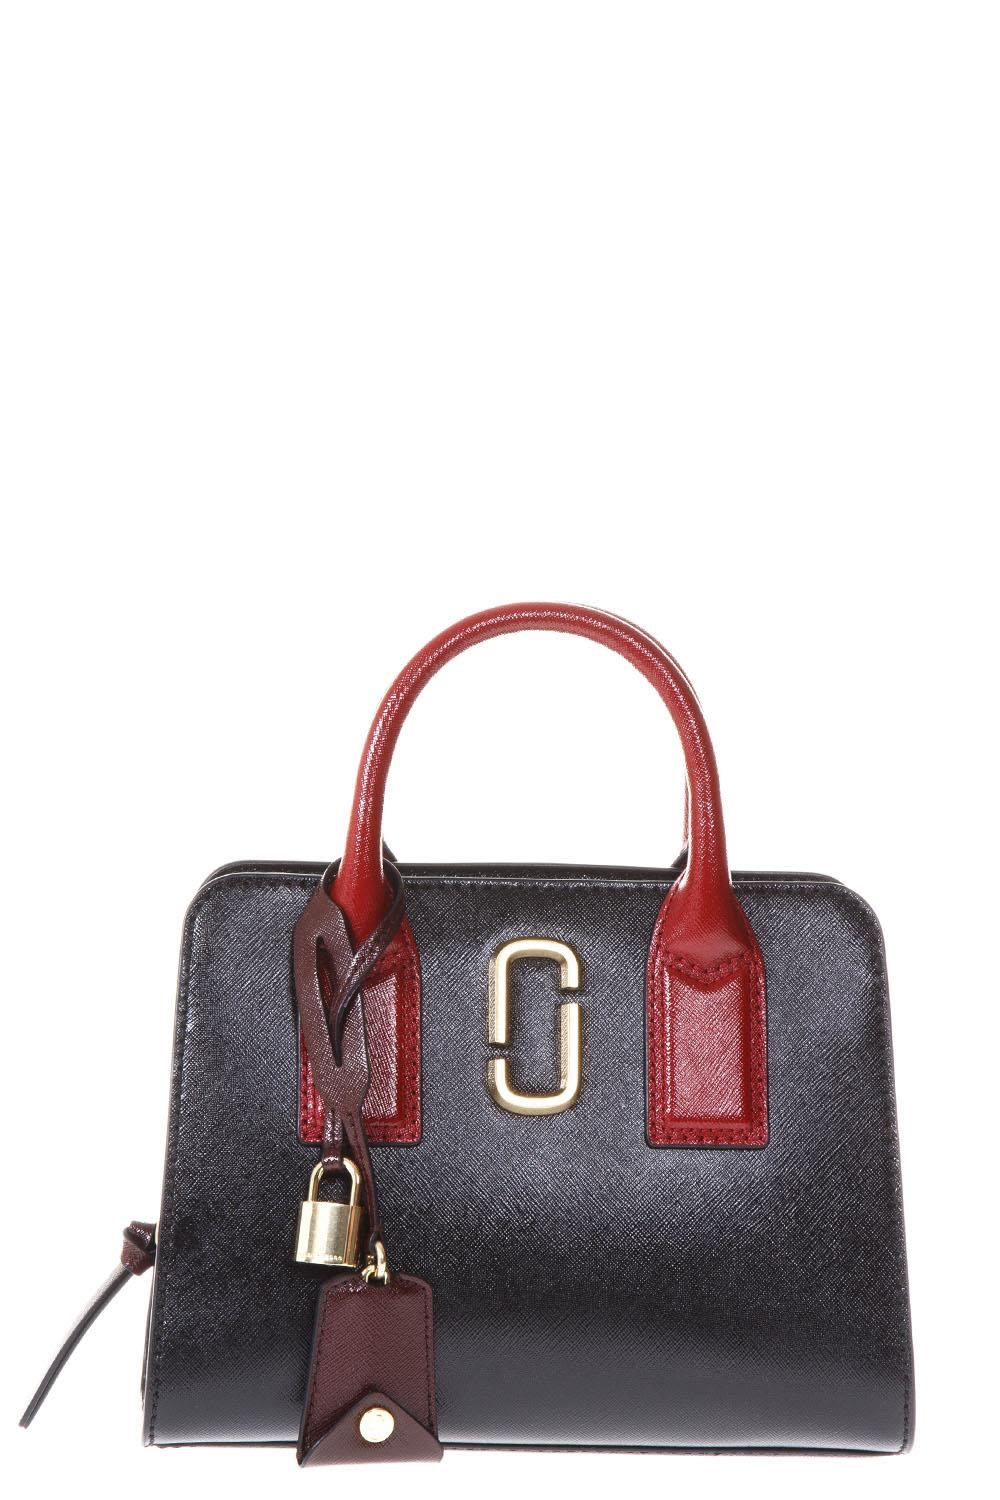 Marc Jacobs Big Little Shot Black Leather Hand Bag